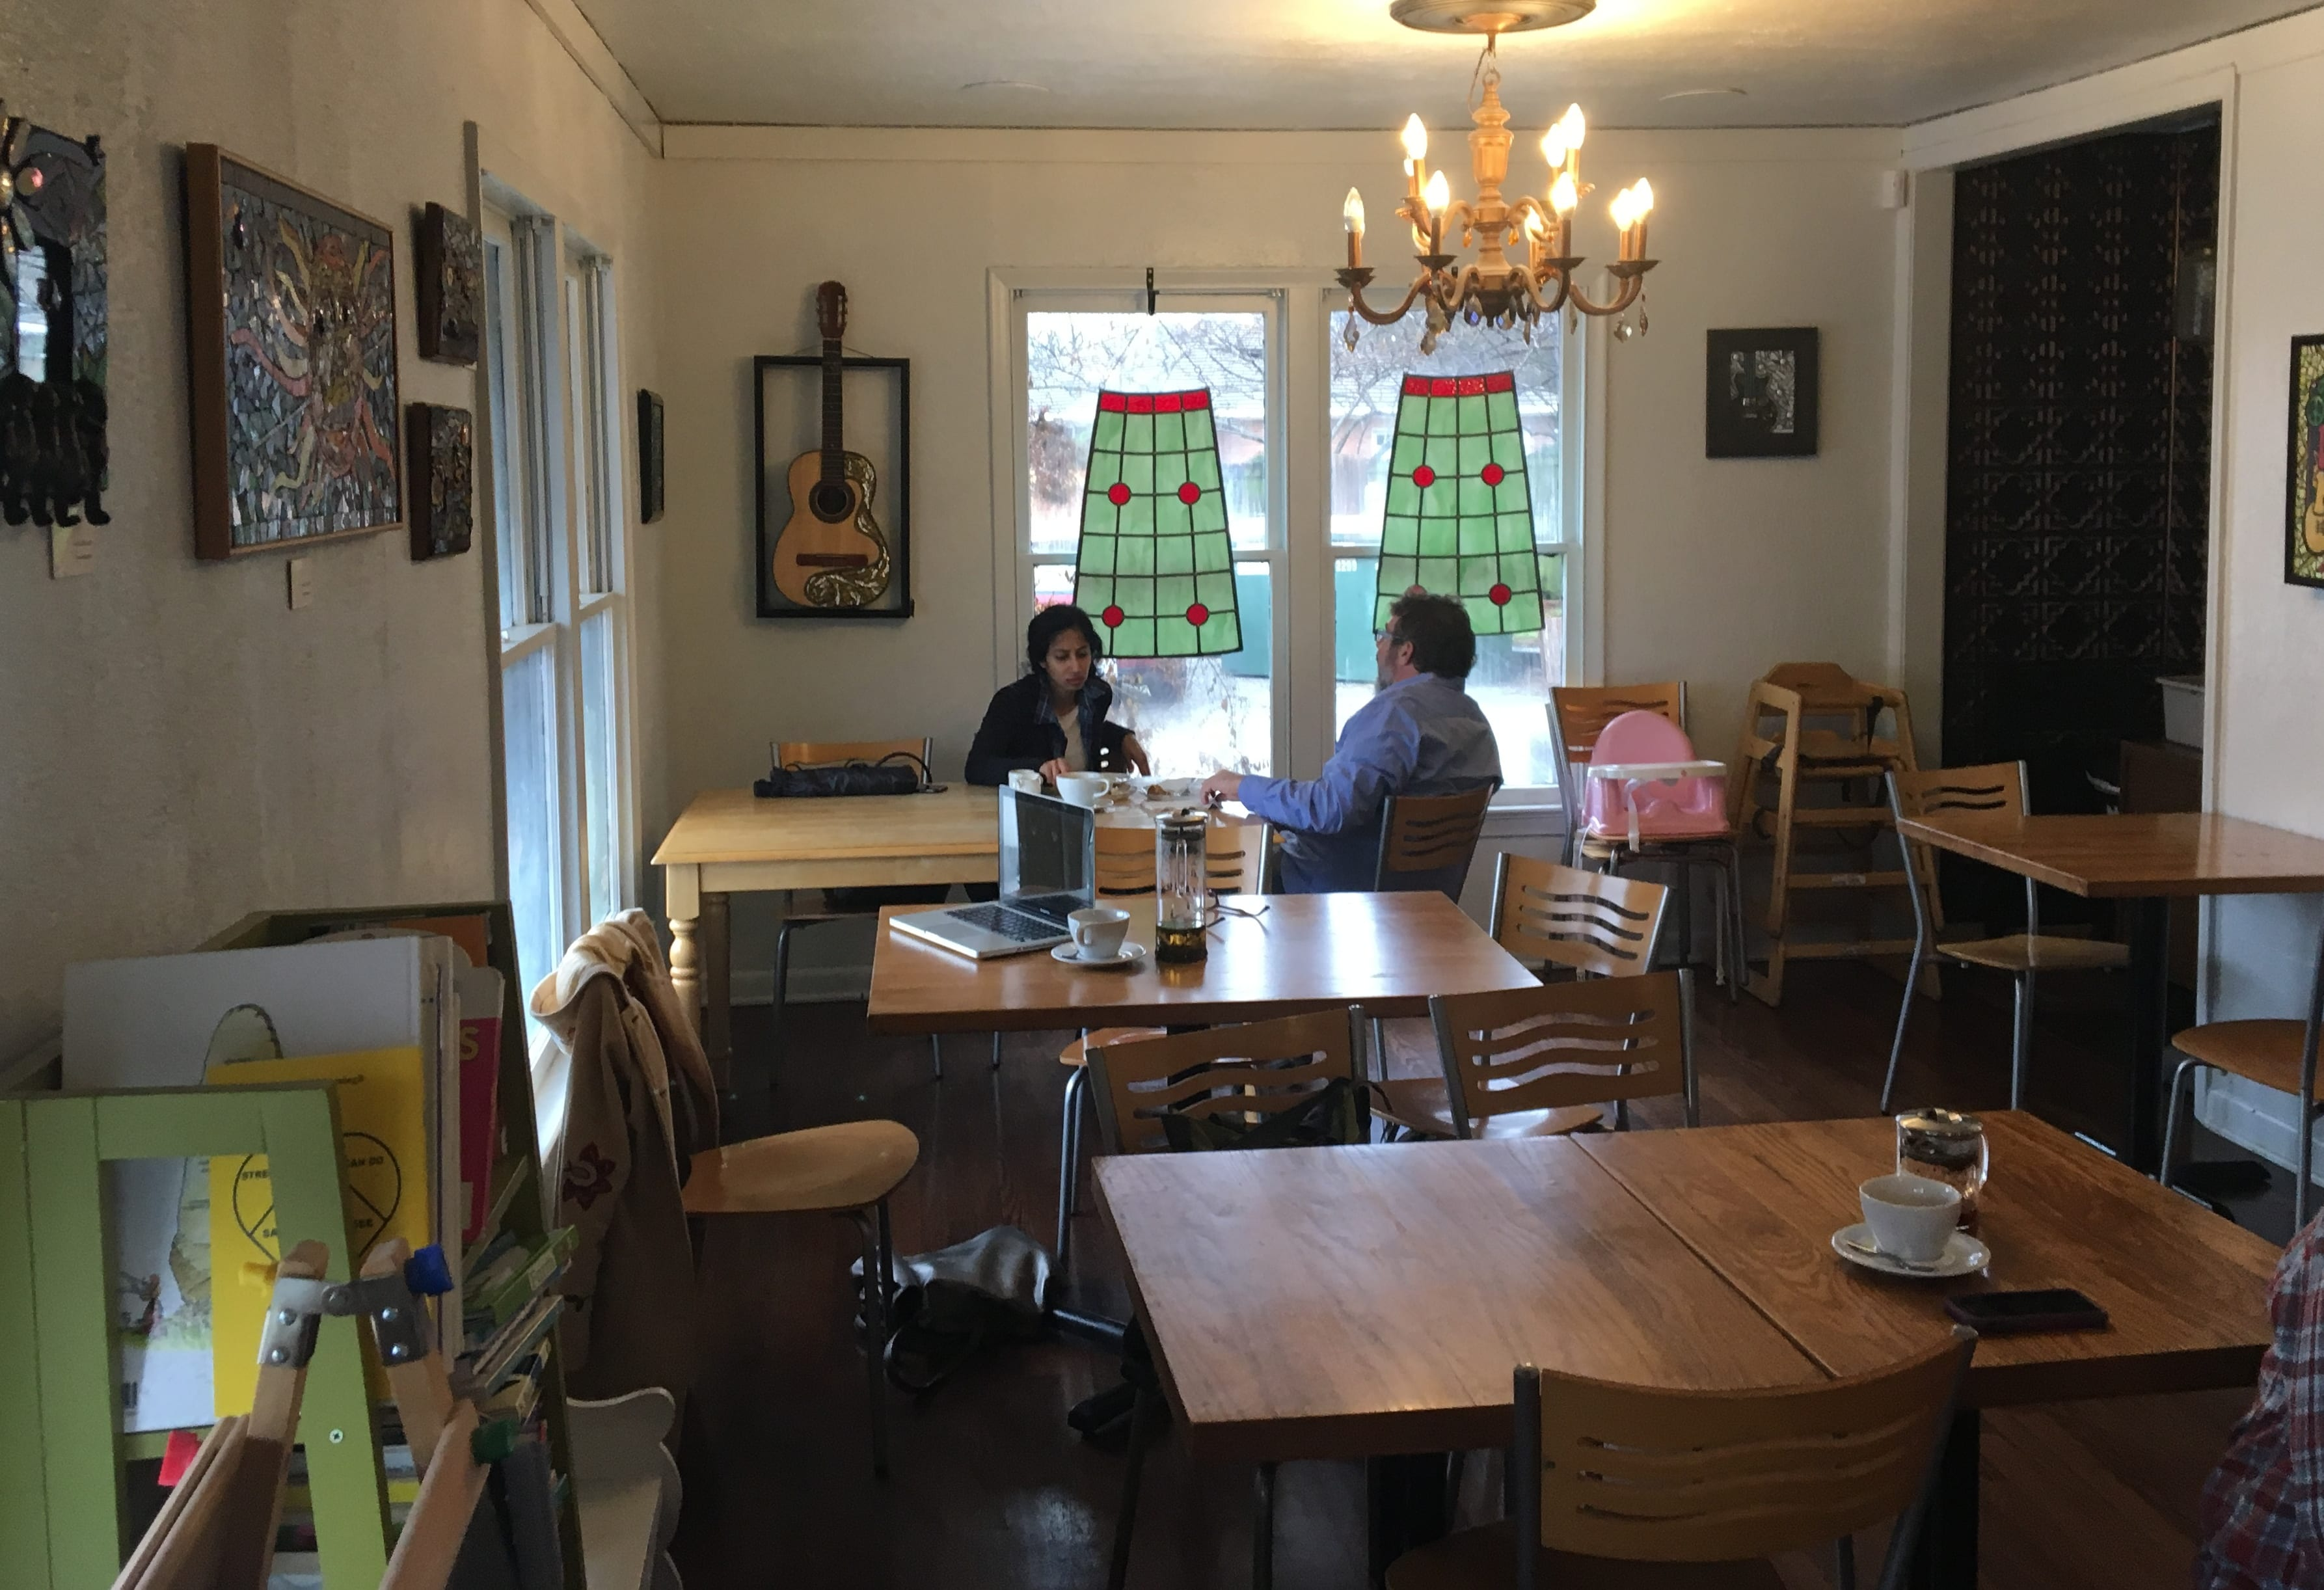 Brentwood Social House Tea Pastries Family Friendly Space